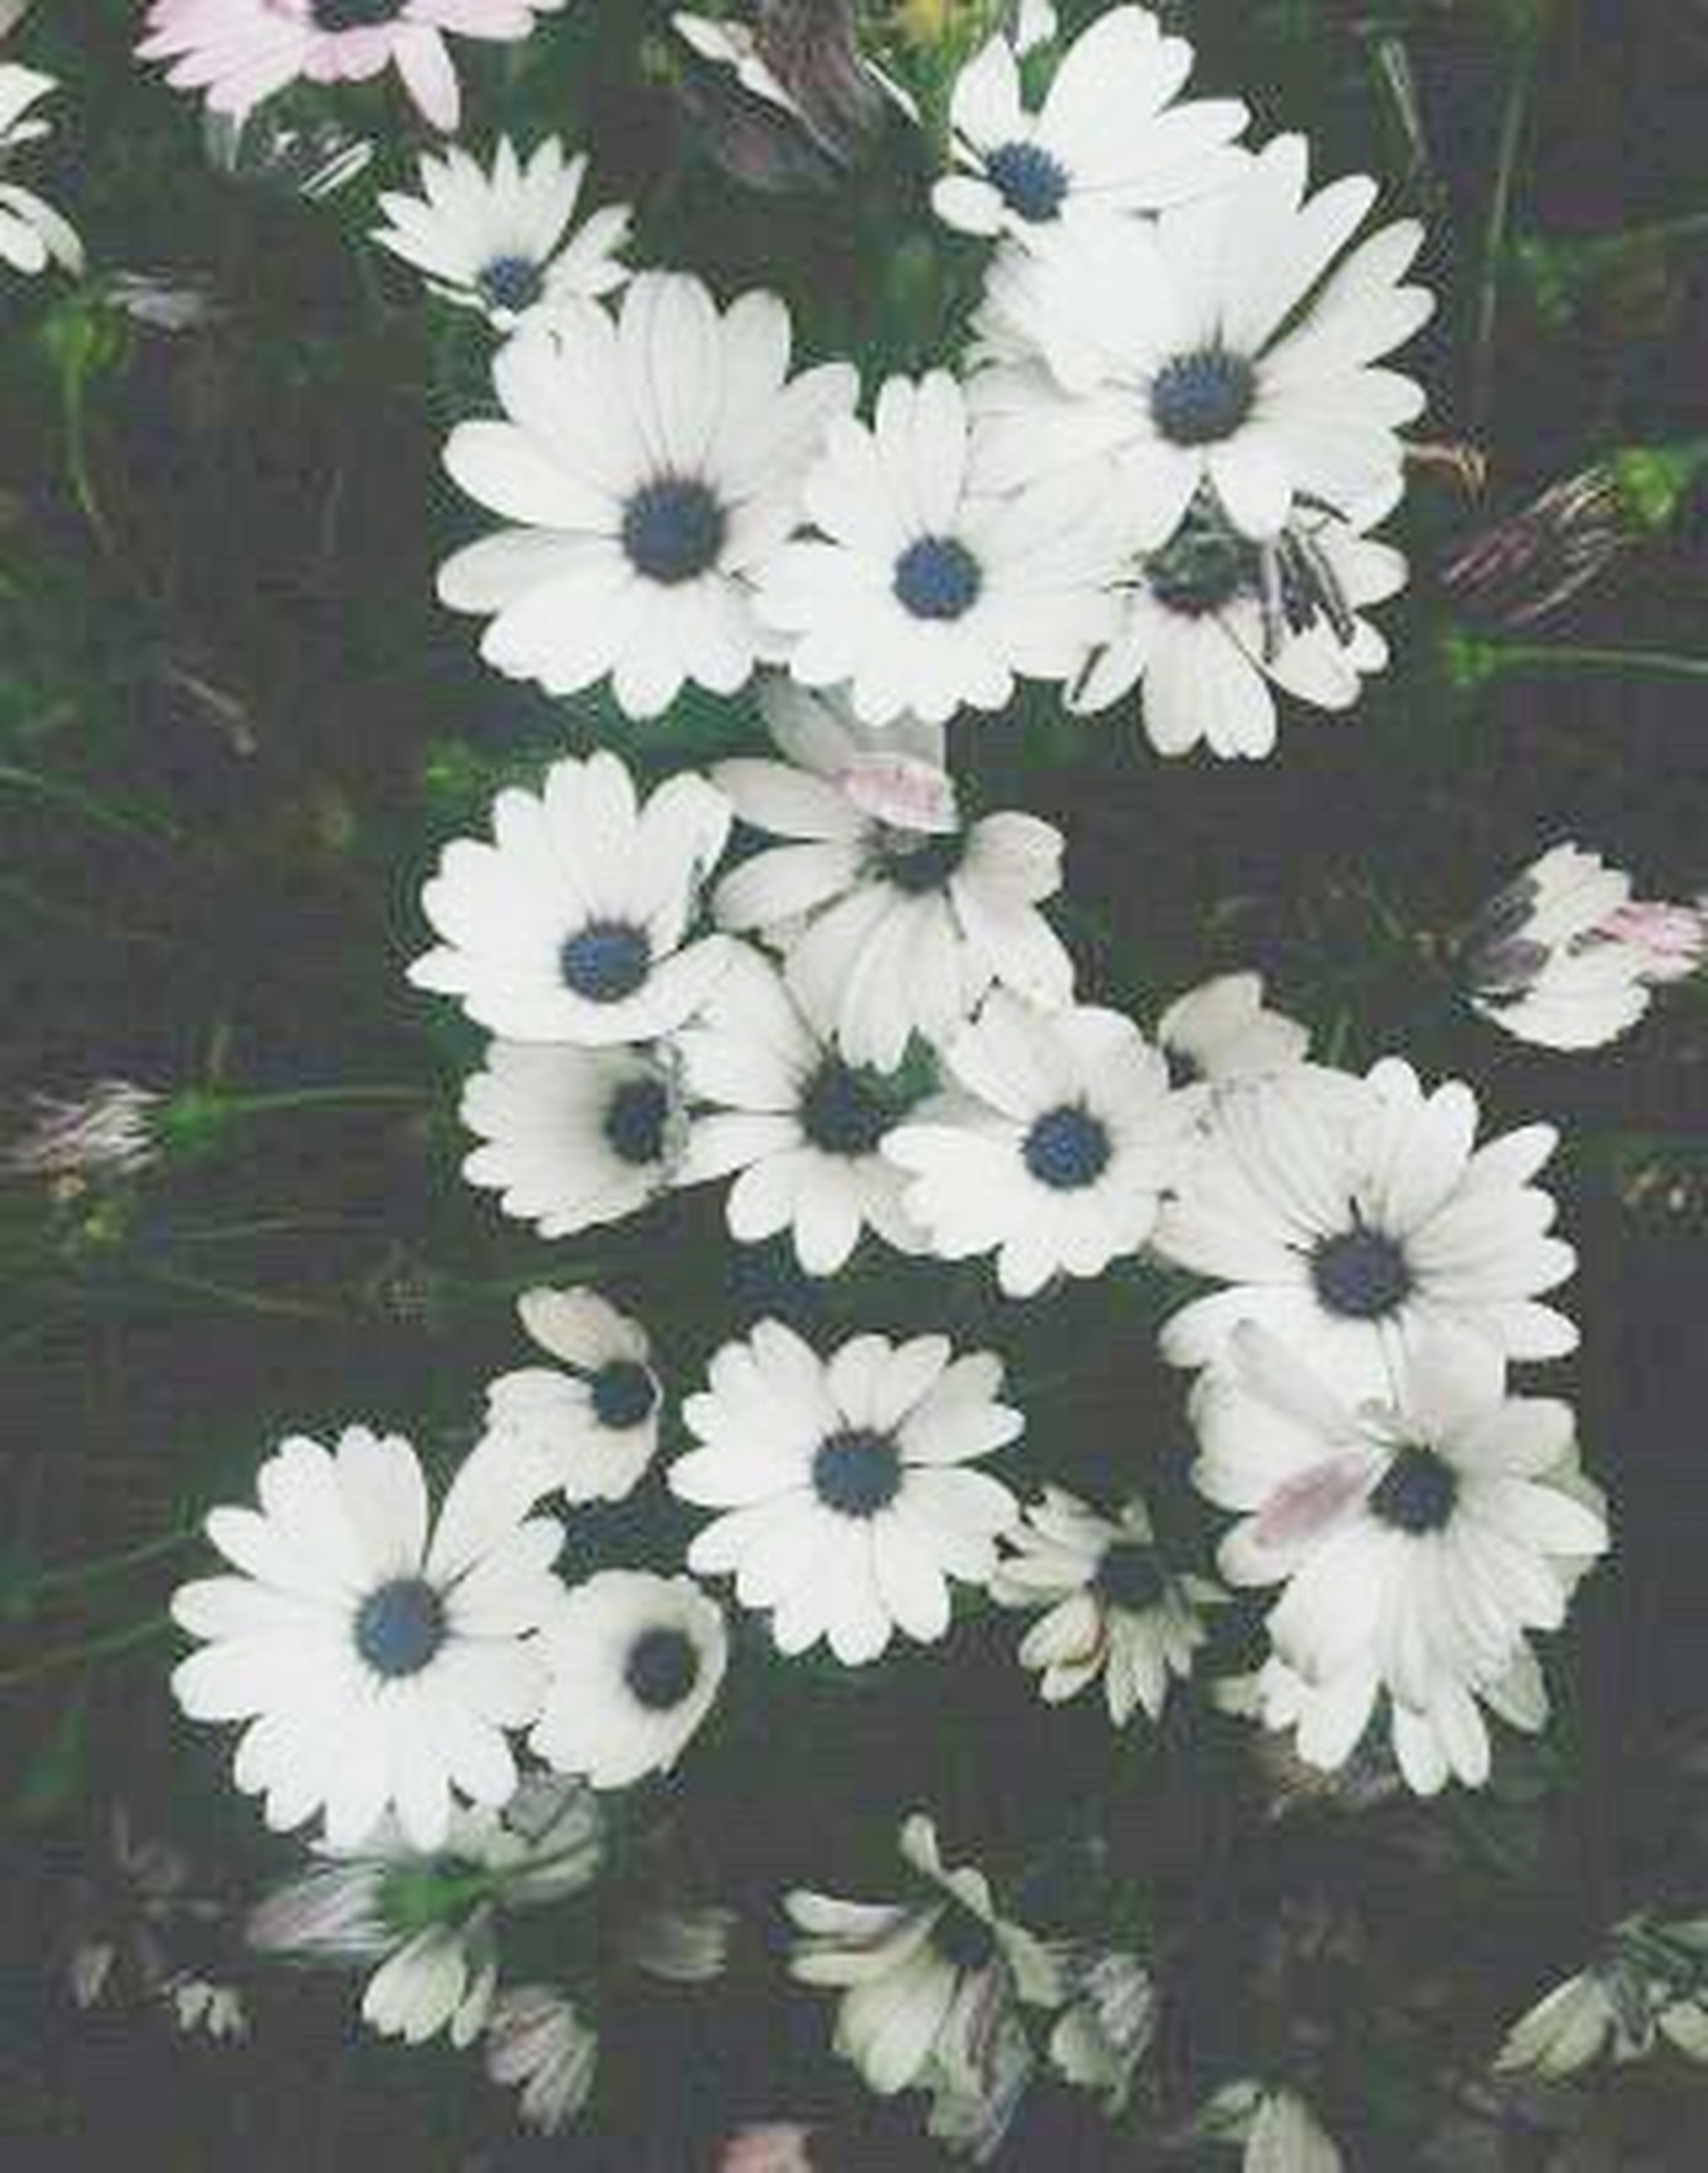 flower, freshness, fragility, growth, white color, petal, beauty in nature, flower head, close-up, nature, plant, daisy, day, blooming, springtime, in bloom, pollen, growing, blossom, no people, daisies, bloom